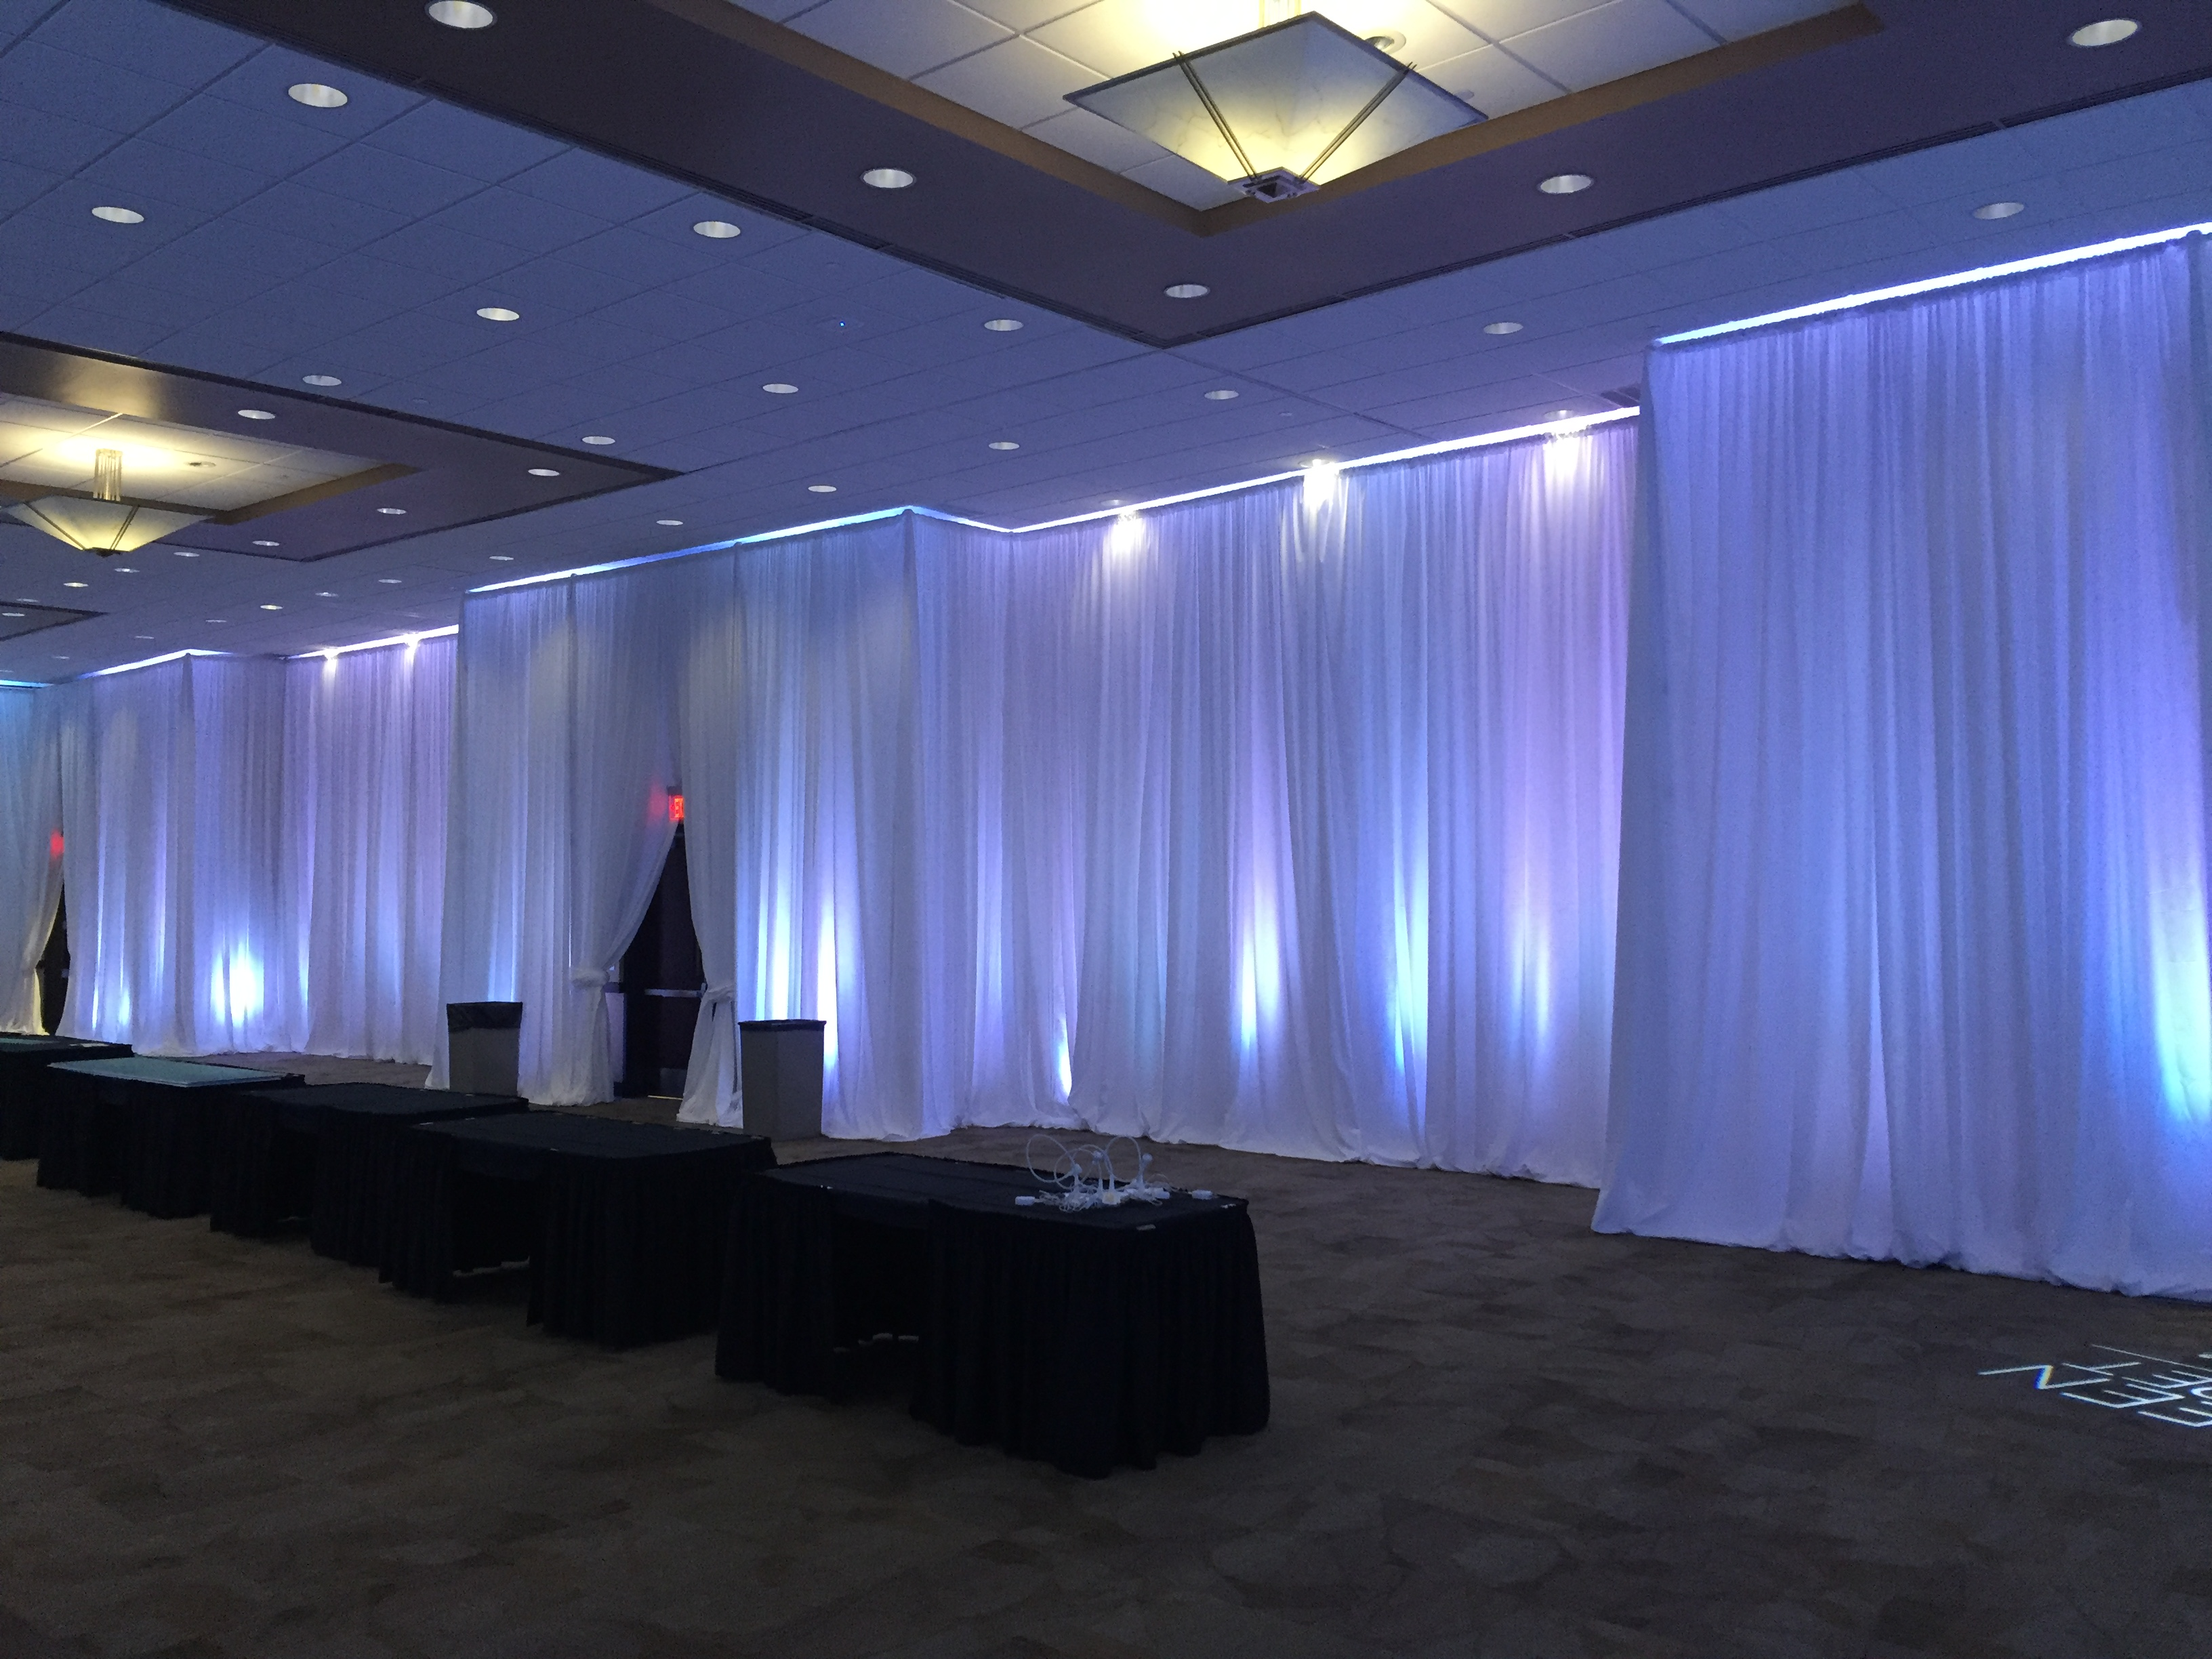 events lighting to click drapery drape for how ceiling door drapes room backdrop michigan hang prix grand pipe ceilings fabric draping